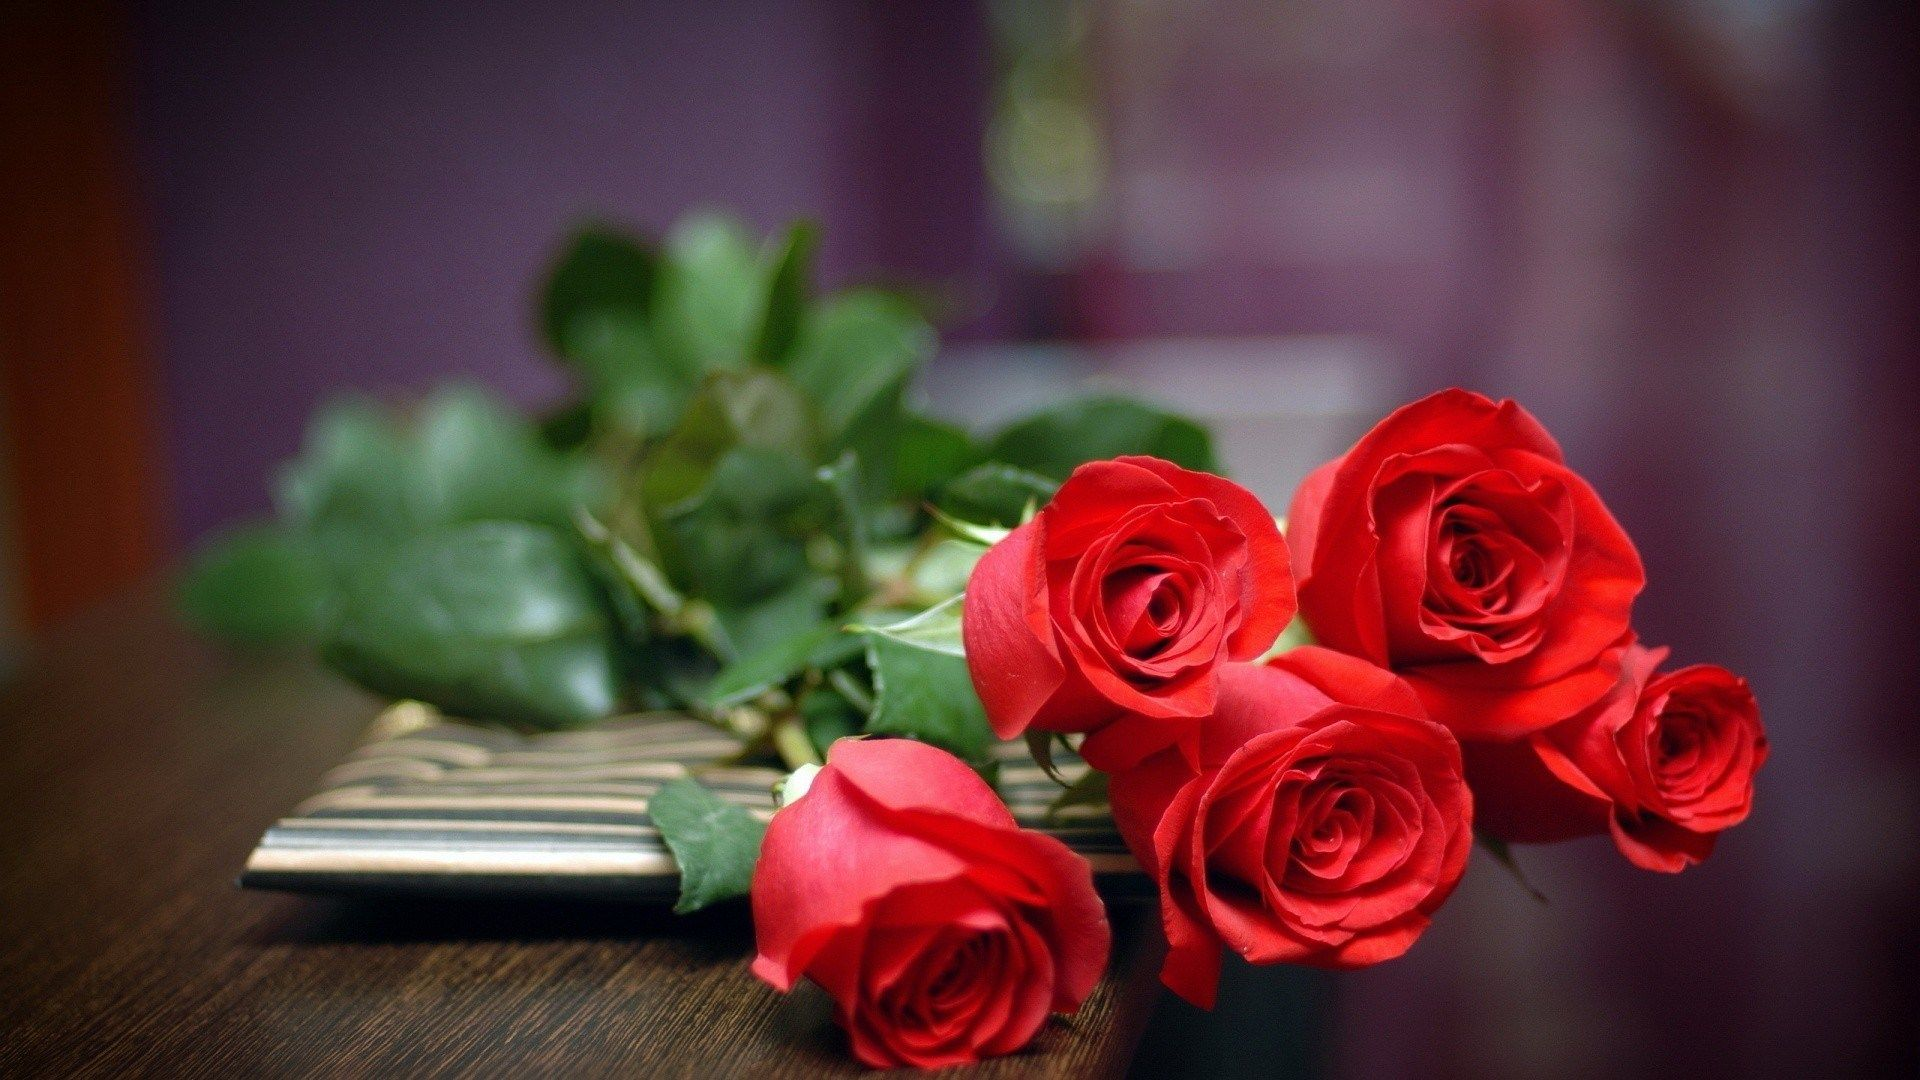 Red Rose Images Hd Wallpapers Photos Pictures Love Wallpaper